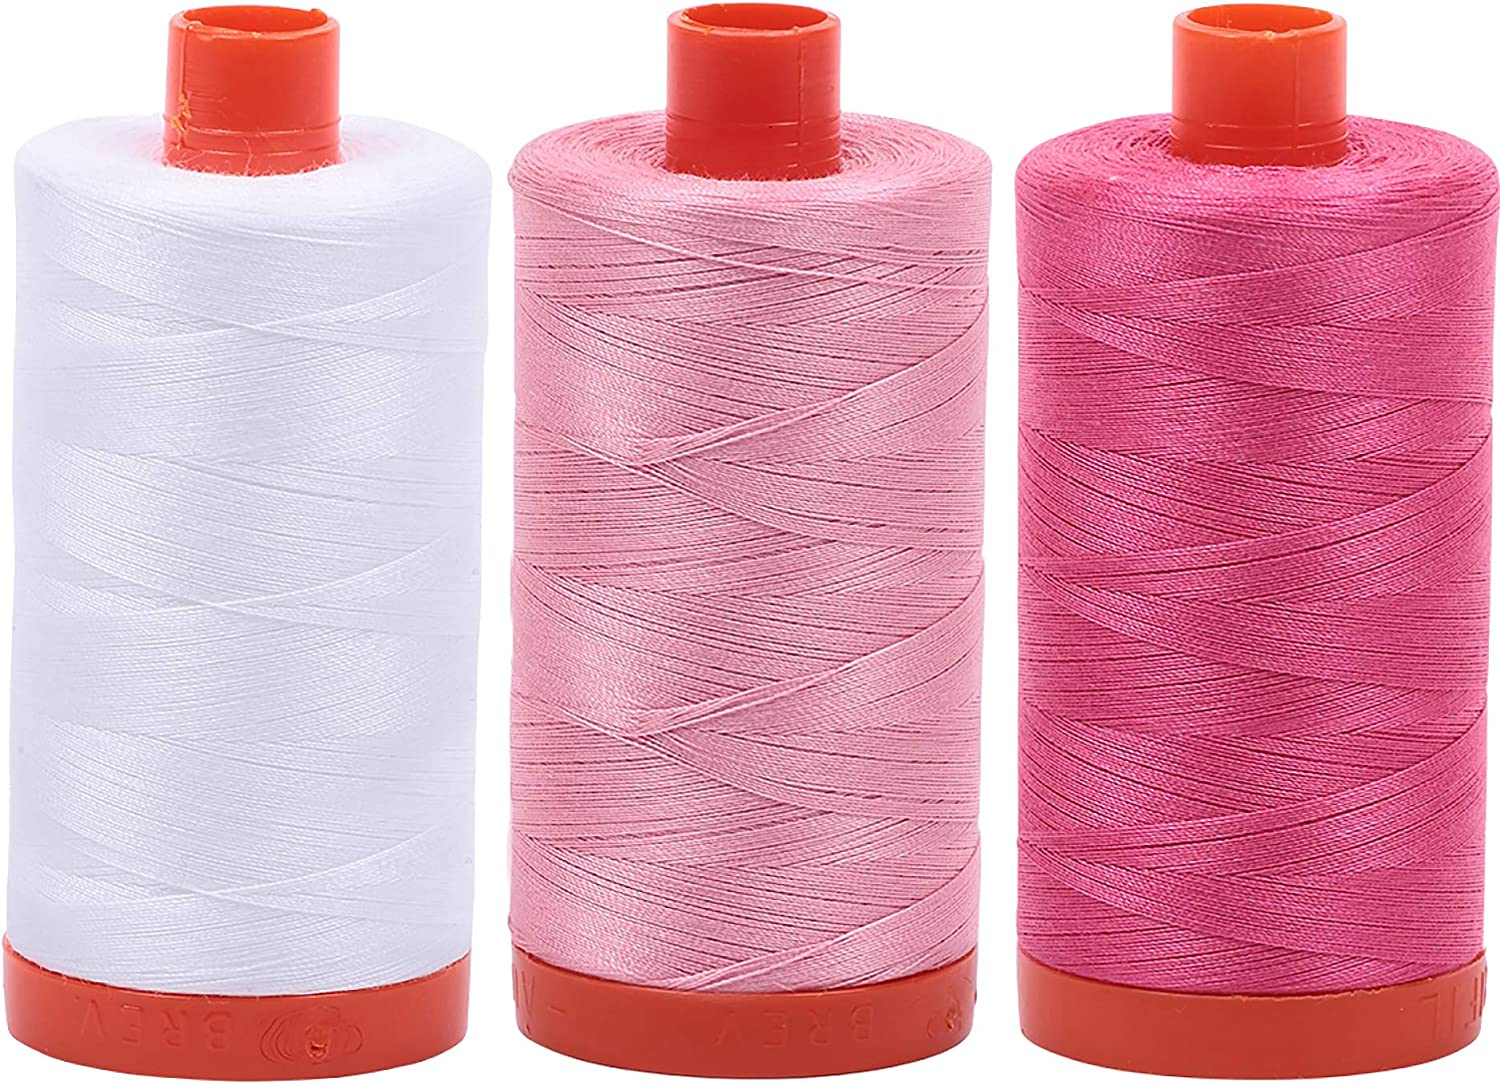 2024+2423+2530 Baby Pink Blossom Pink Aurifil Mako 100/% Cotton 50wt Thread 3 Large 1422yd Spools: White